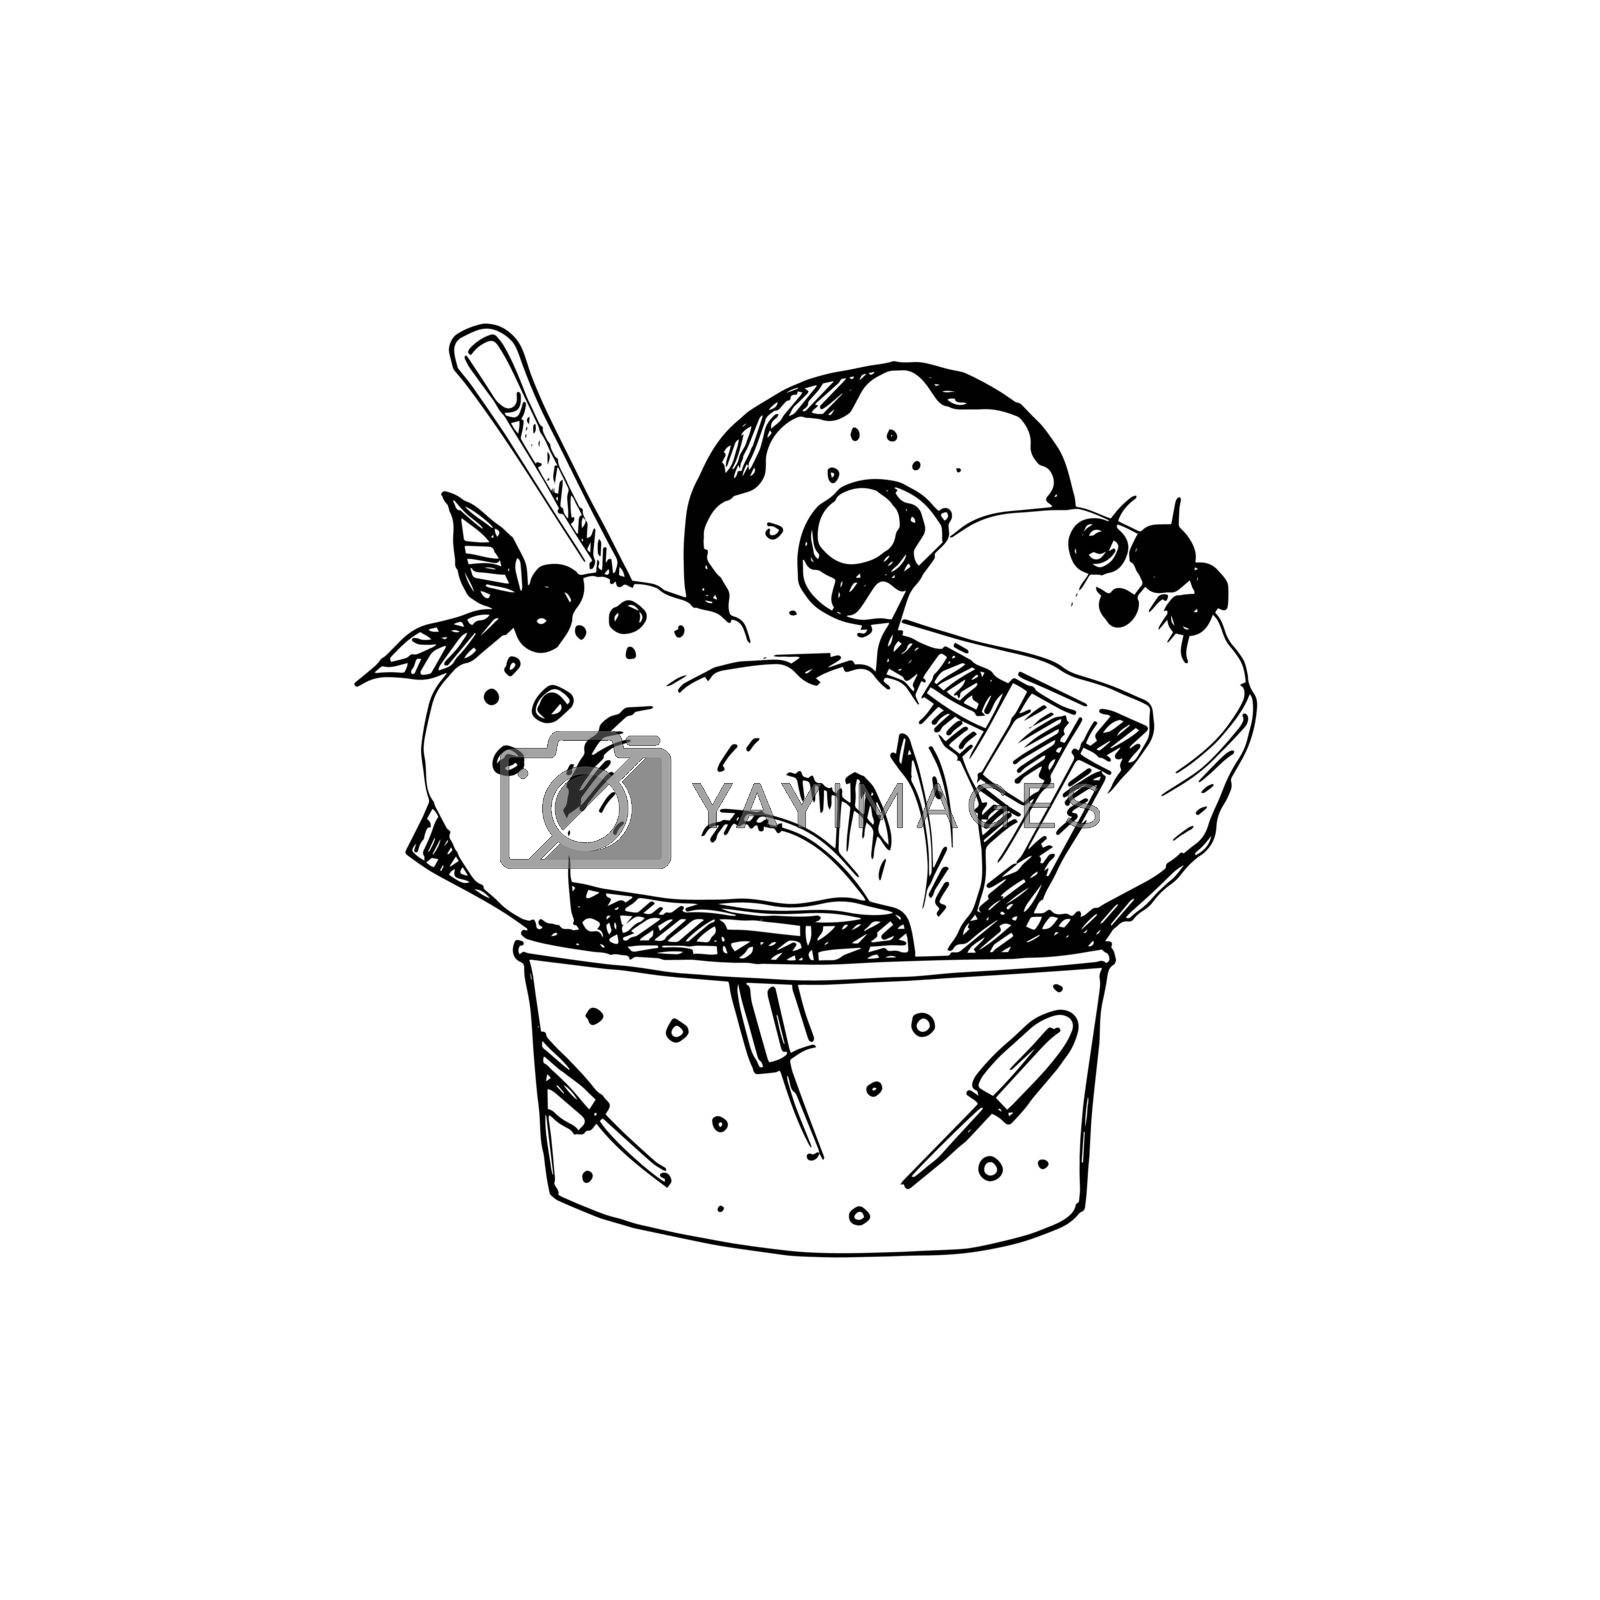 Hand Drawn Sketch of Ice Cream in Bowl. Vintage Sketch. Great for Banner and Label